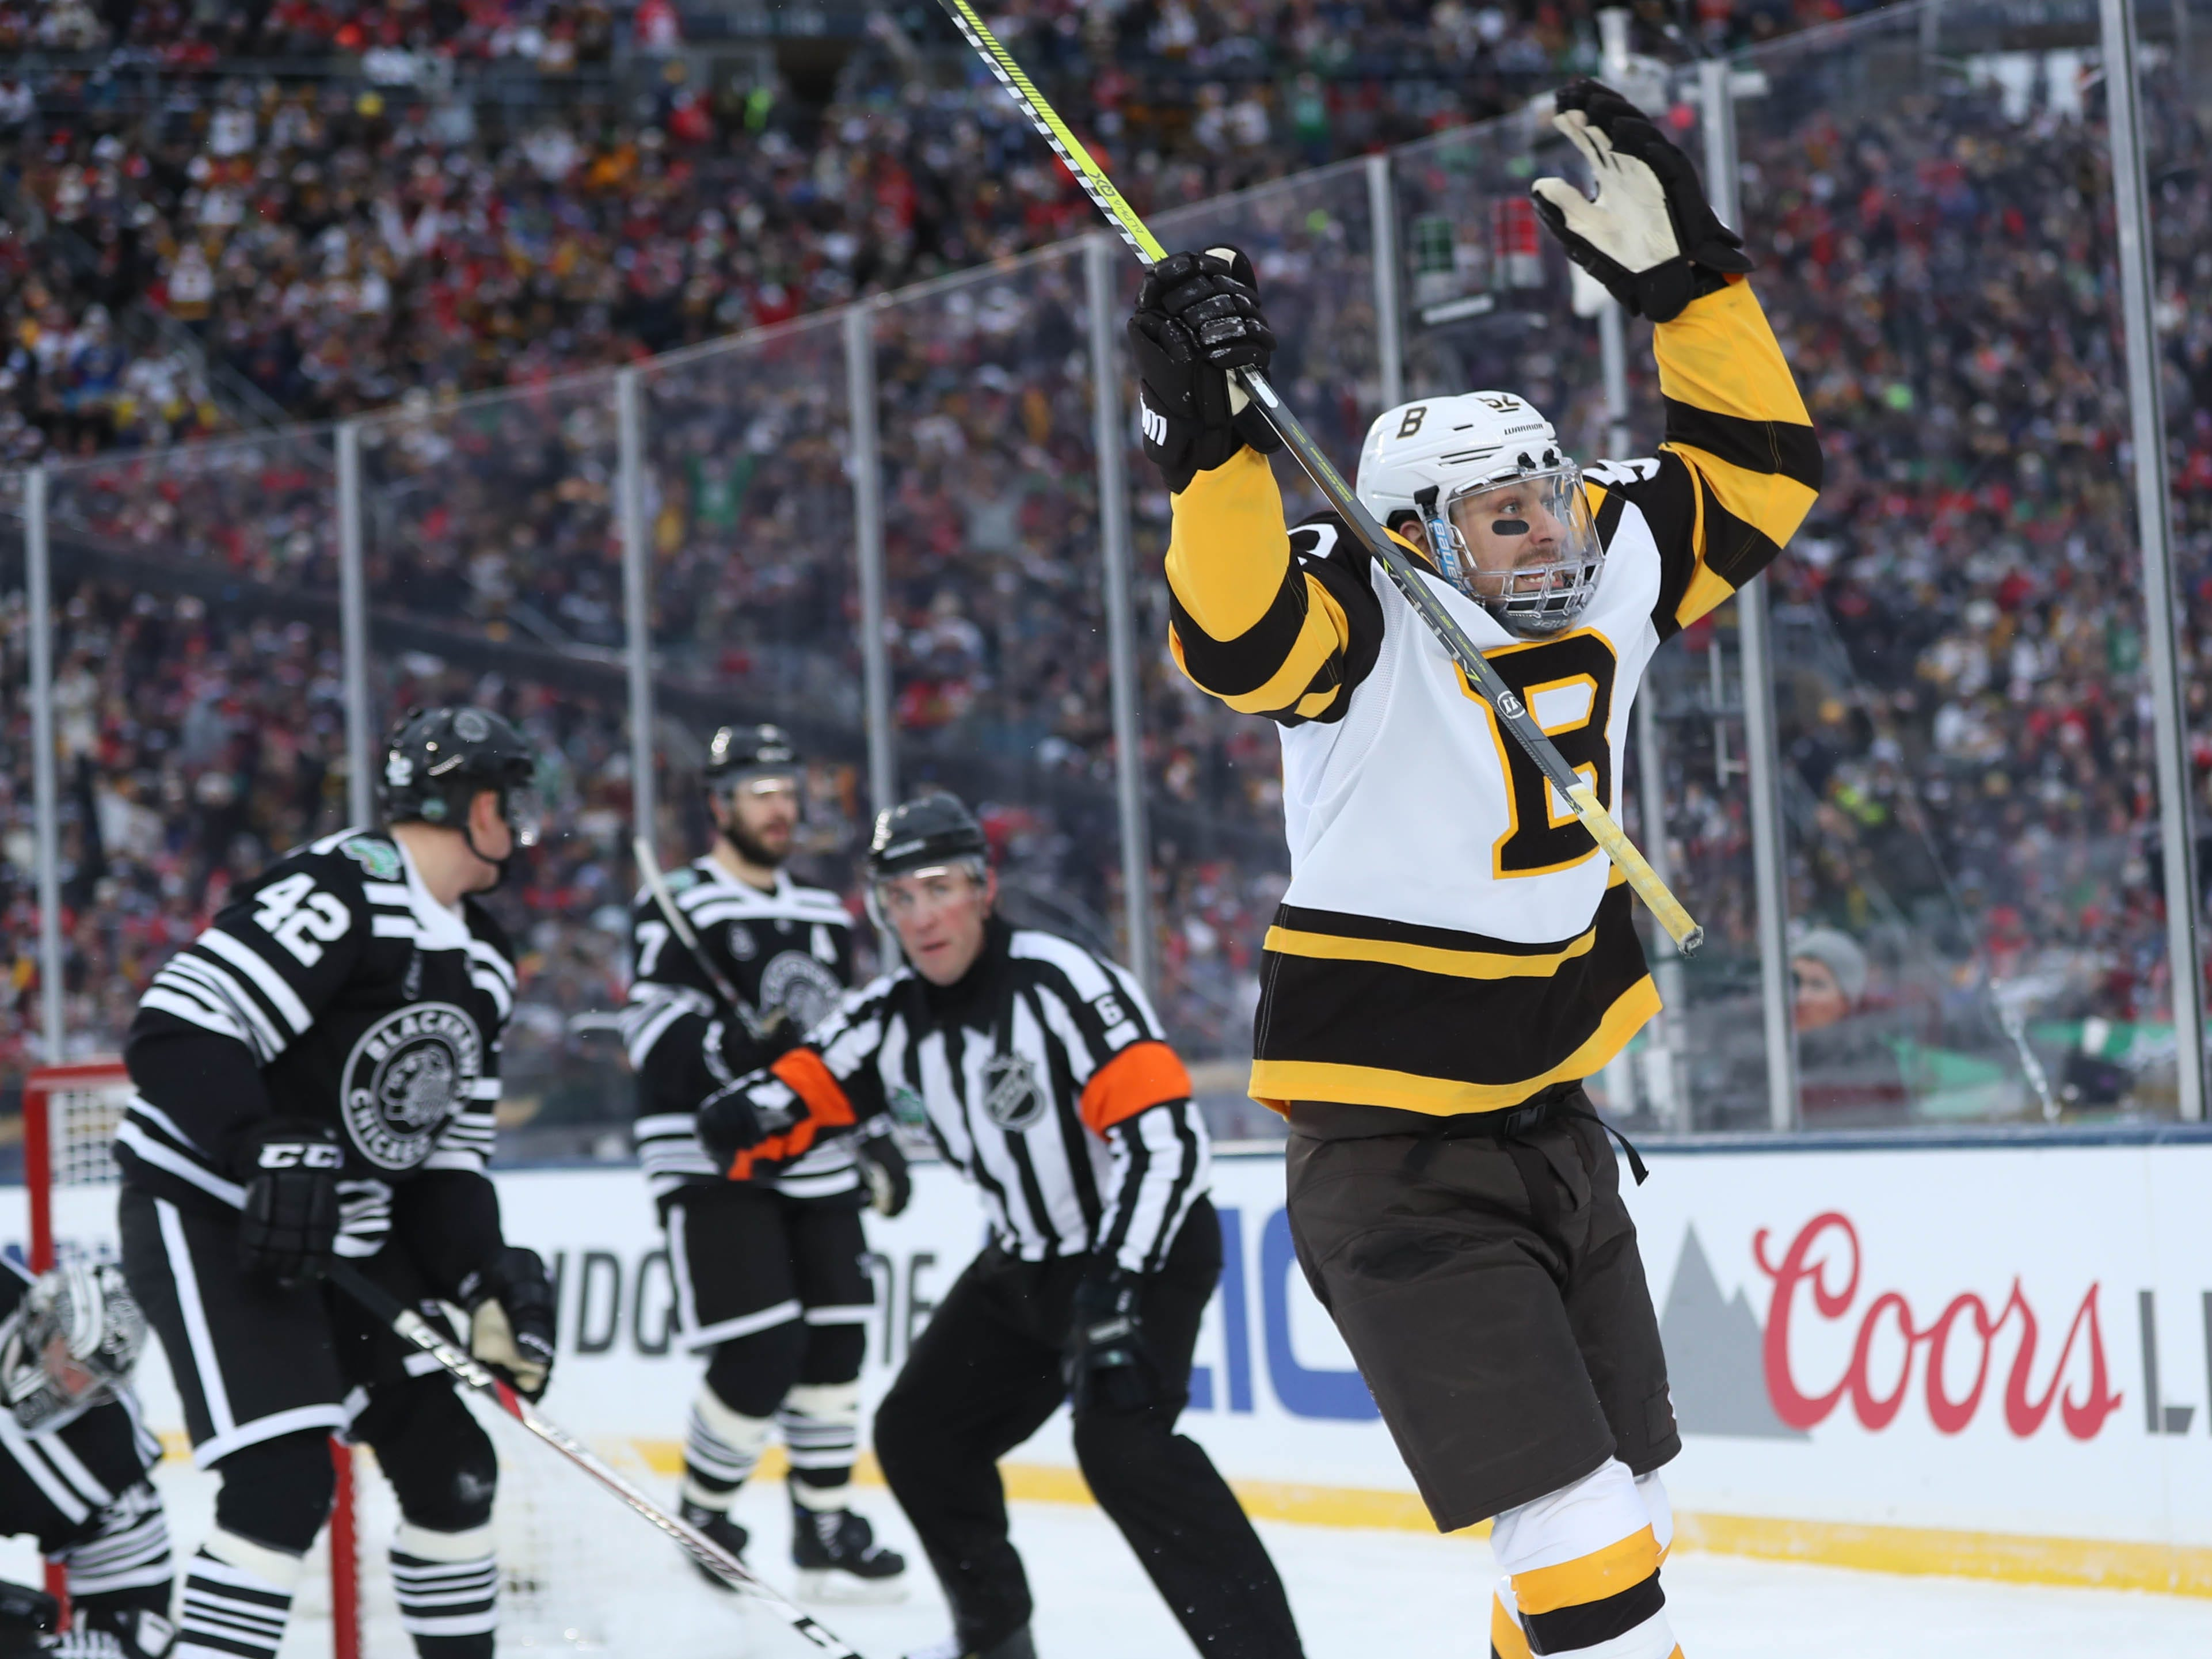 Jan. 1: Boston Bruins center Sean Kuraly celebrates his third-period goal against the Chicago Blackhawks in the 2019 Winter Classic. It was his second consecutive game-winning goal.